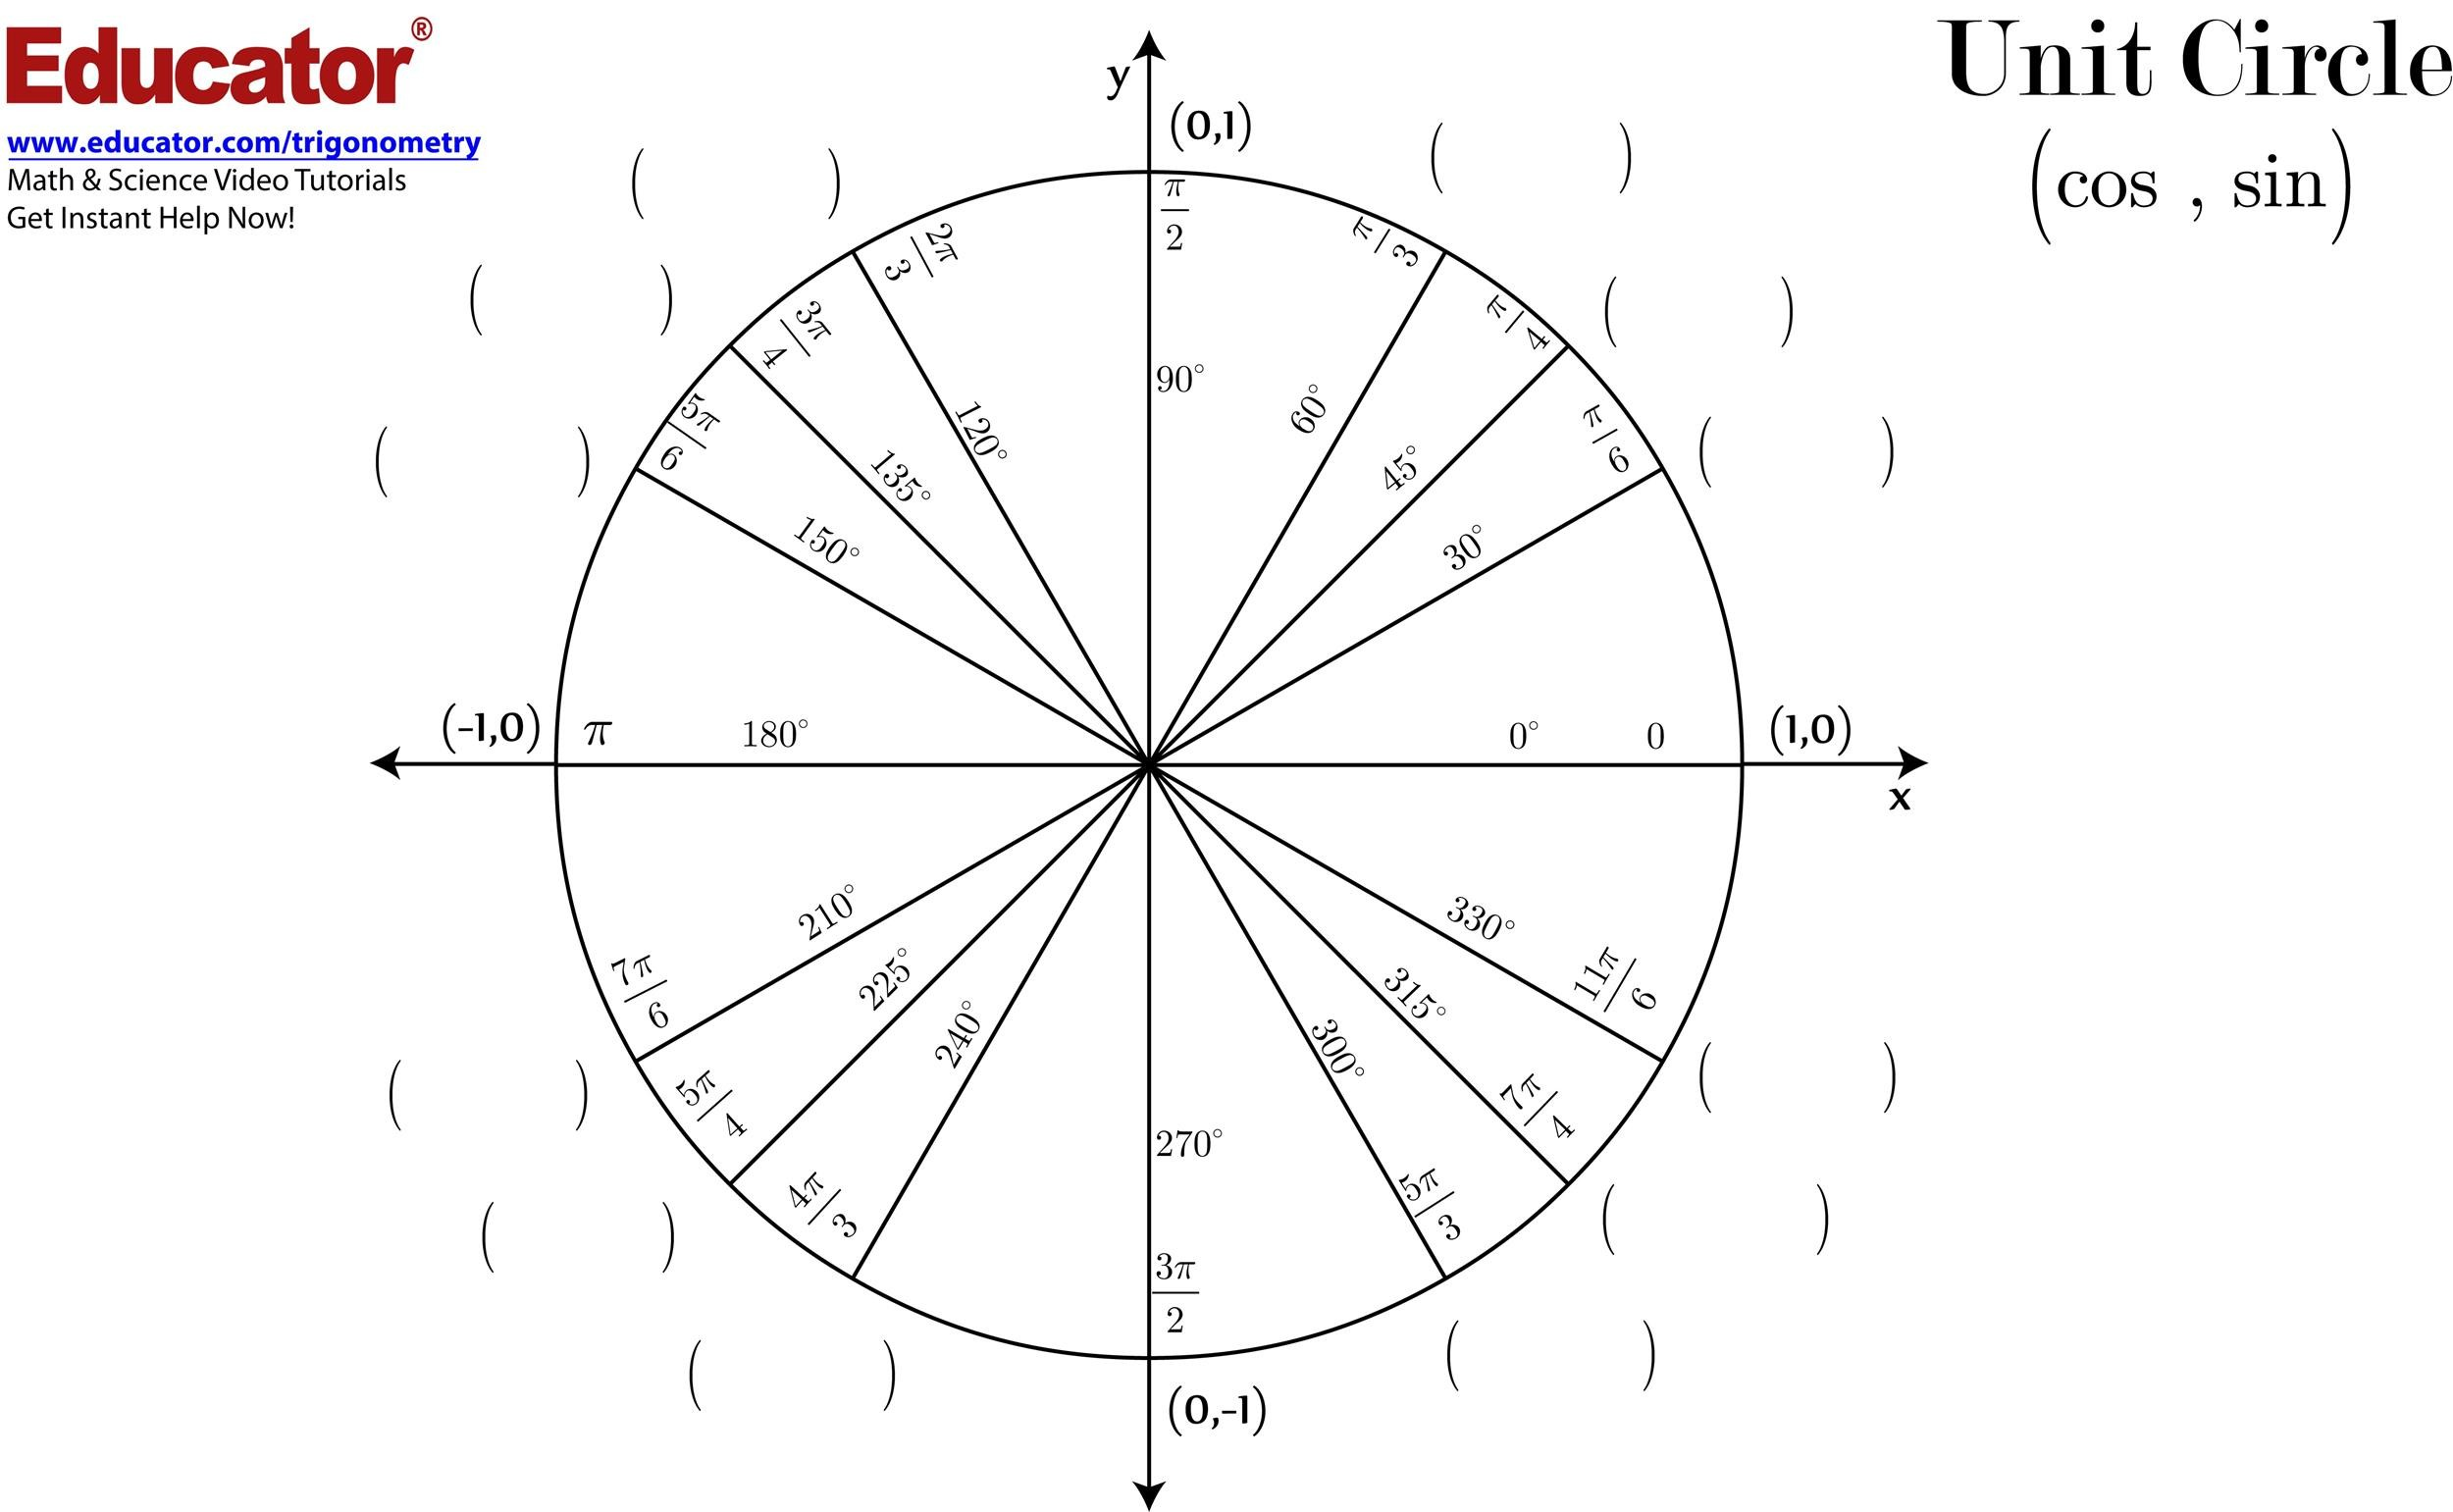 42 Printable Unit Circle Charts Amp Diagrams Sin Cos Tan